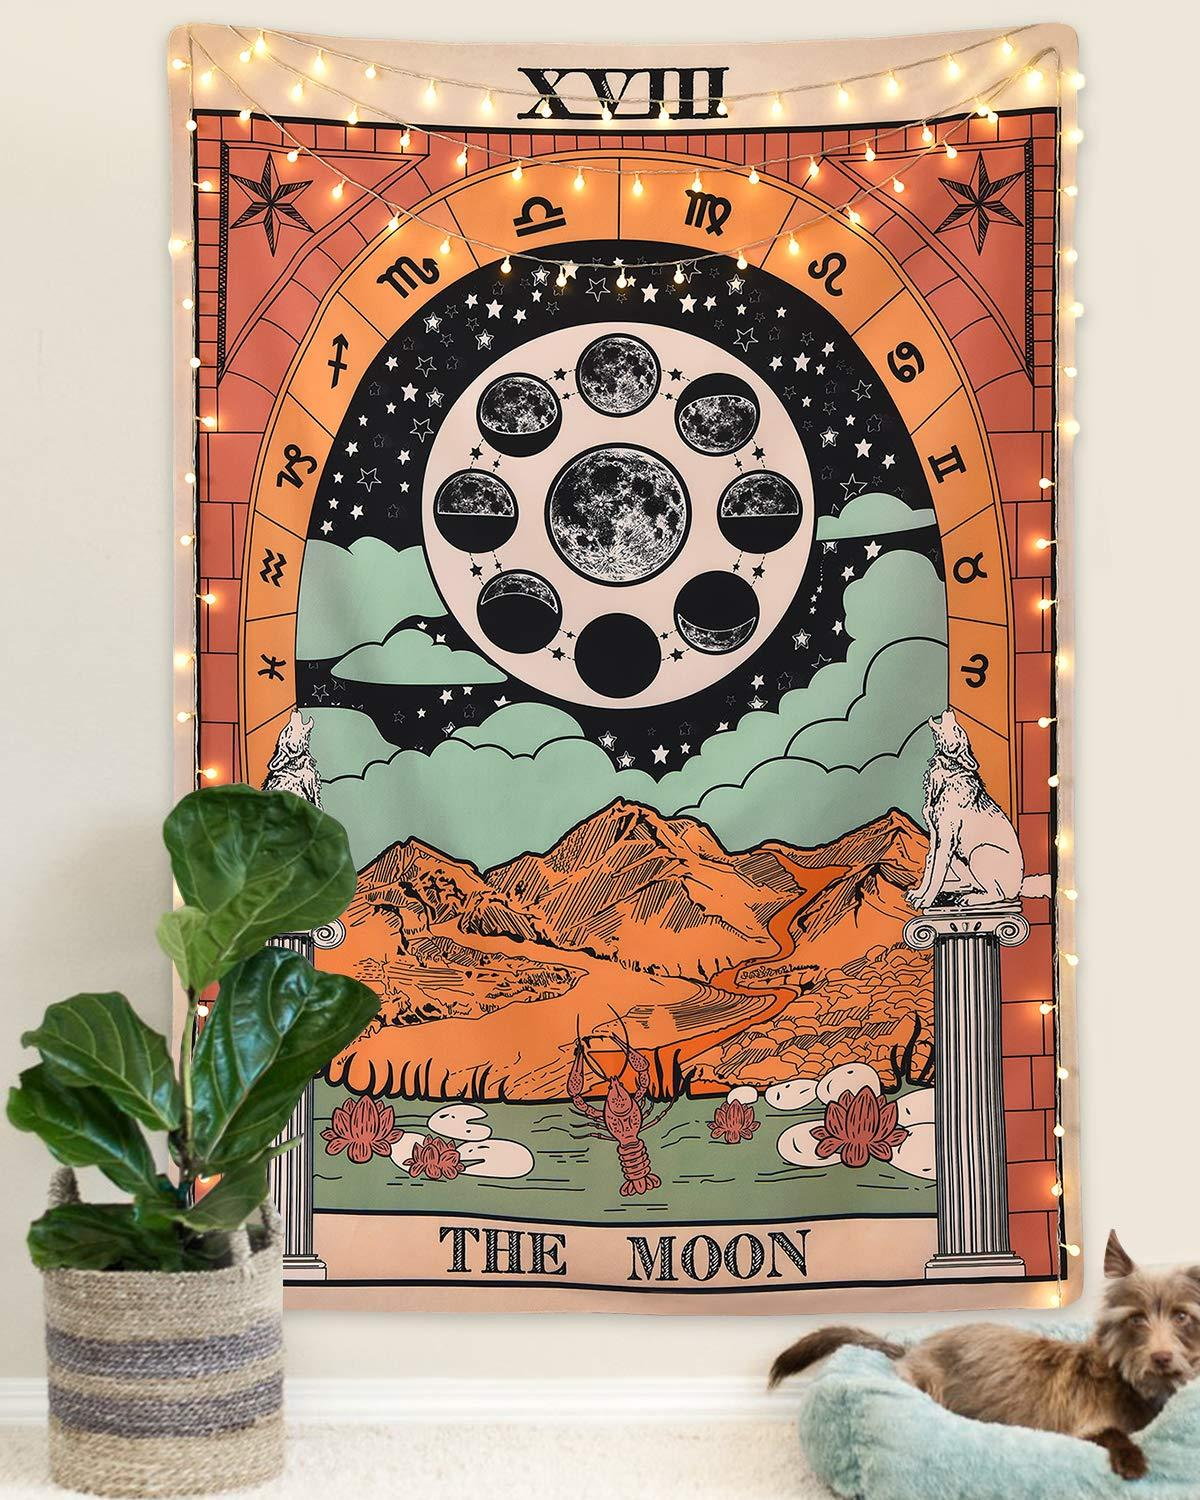 The Sun Star Moon Tapestry Wall Hanging Witchcraft Colorful Tarot Divination Tapestry For Bedroom Decor Astrology Wall Tapestry